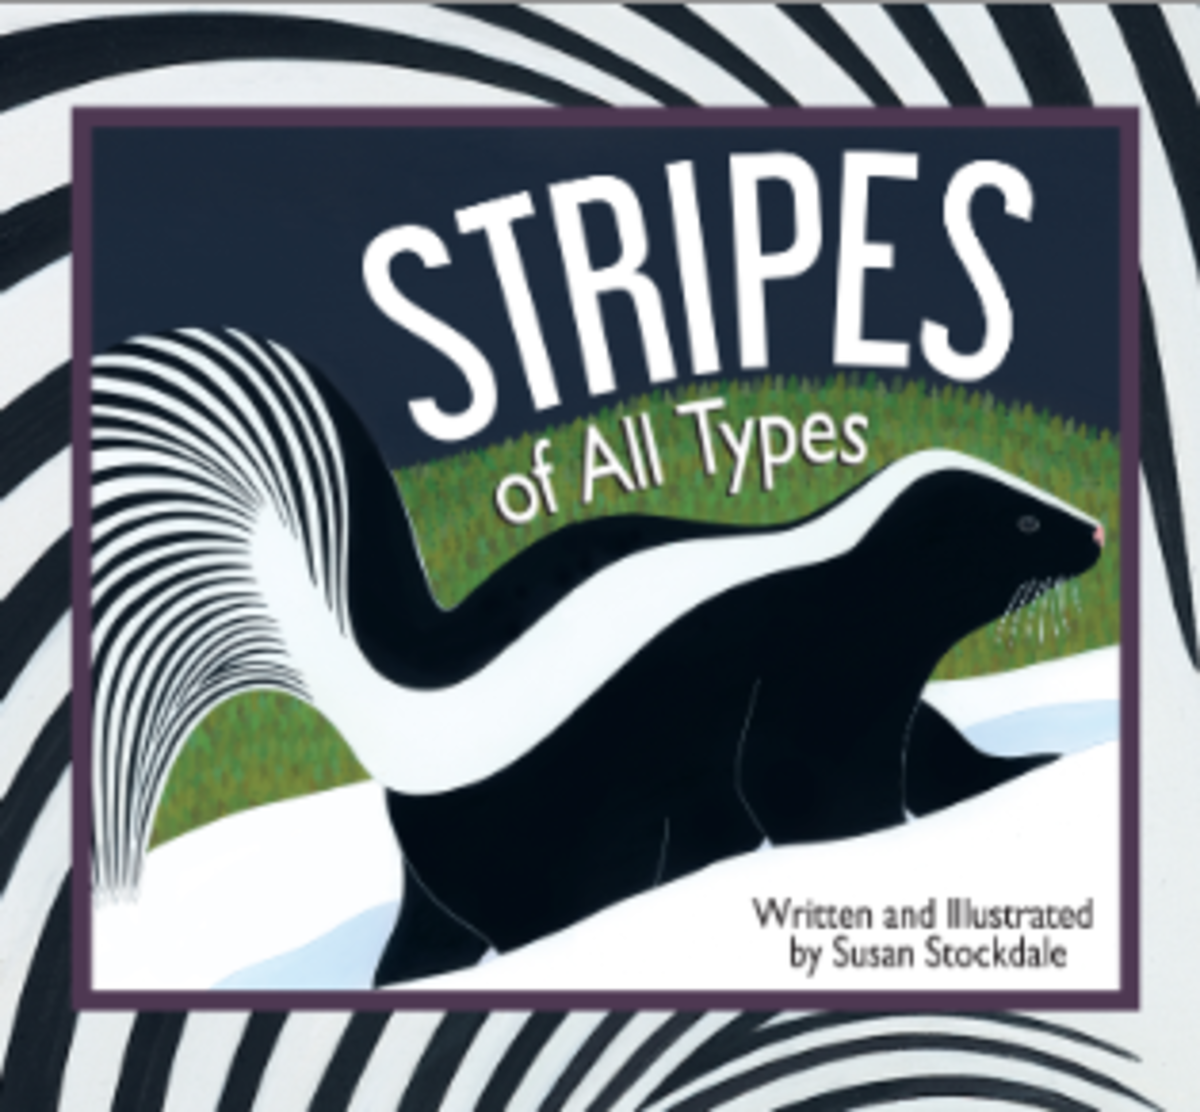 stripes-of-all-types-book